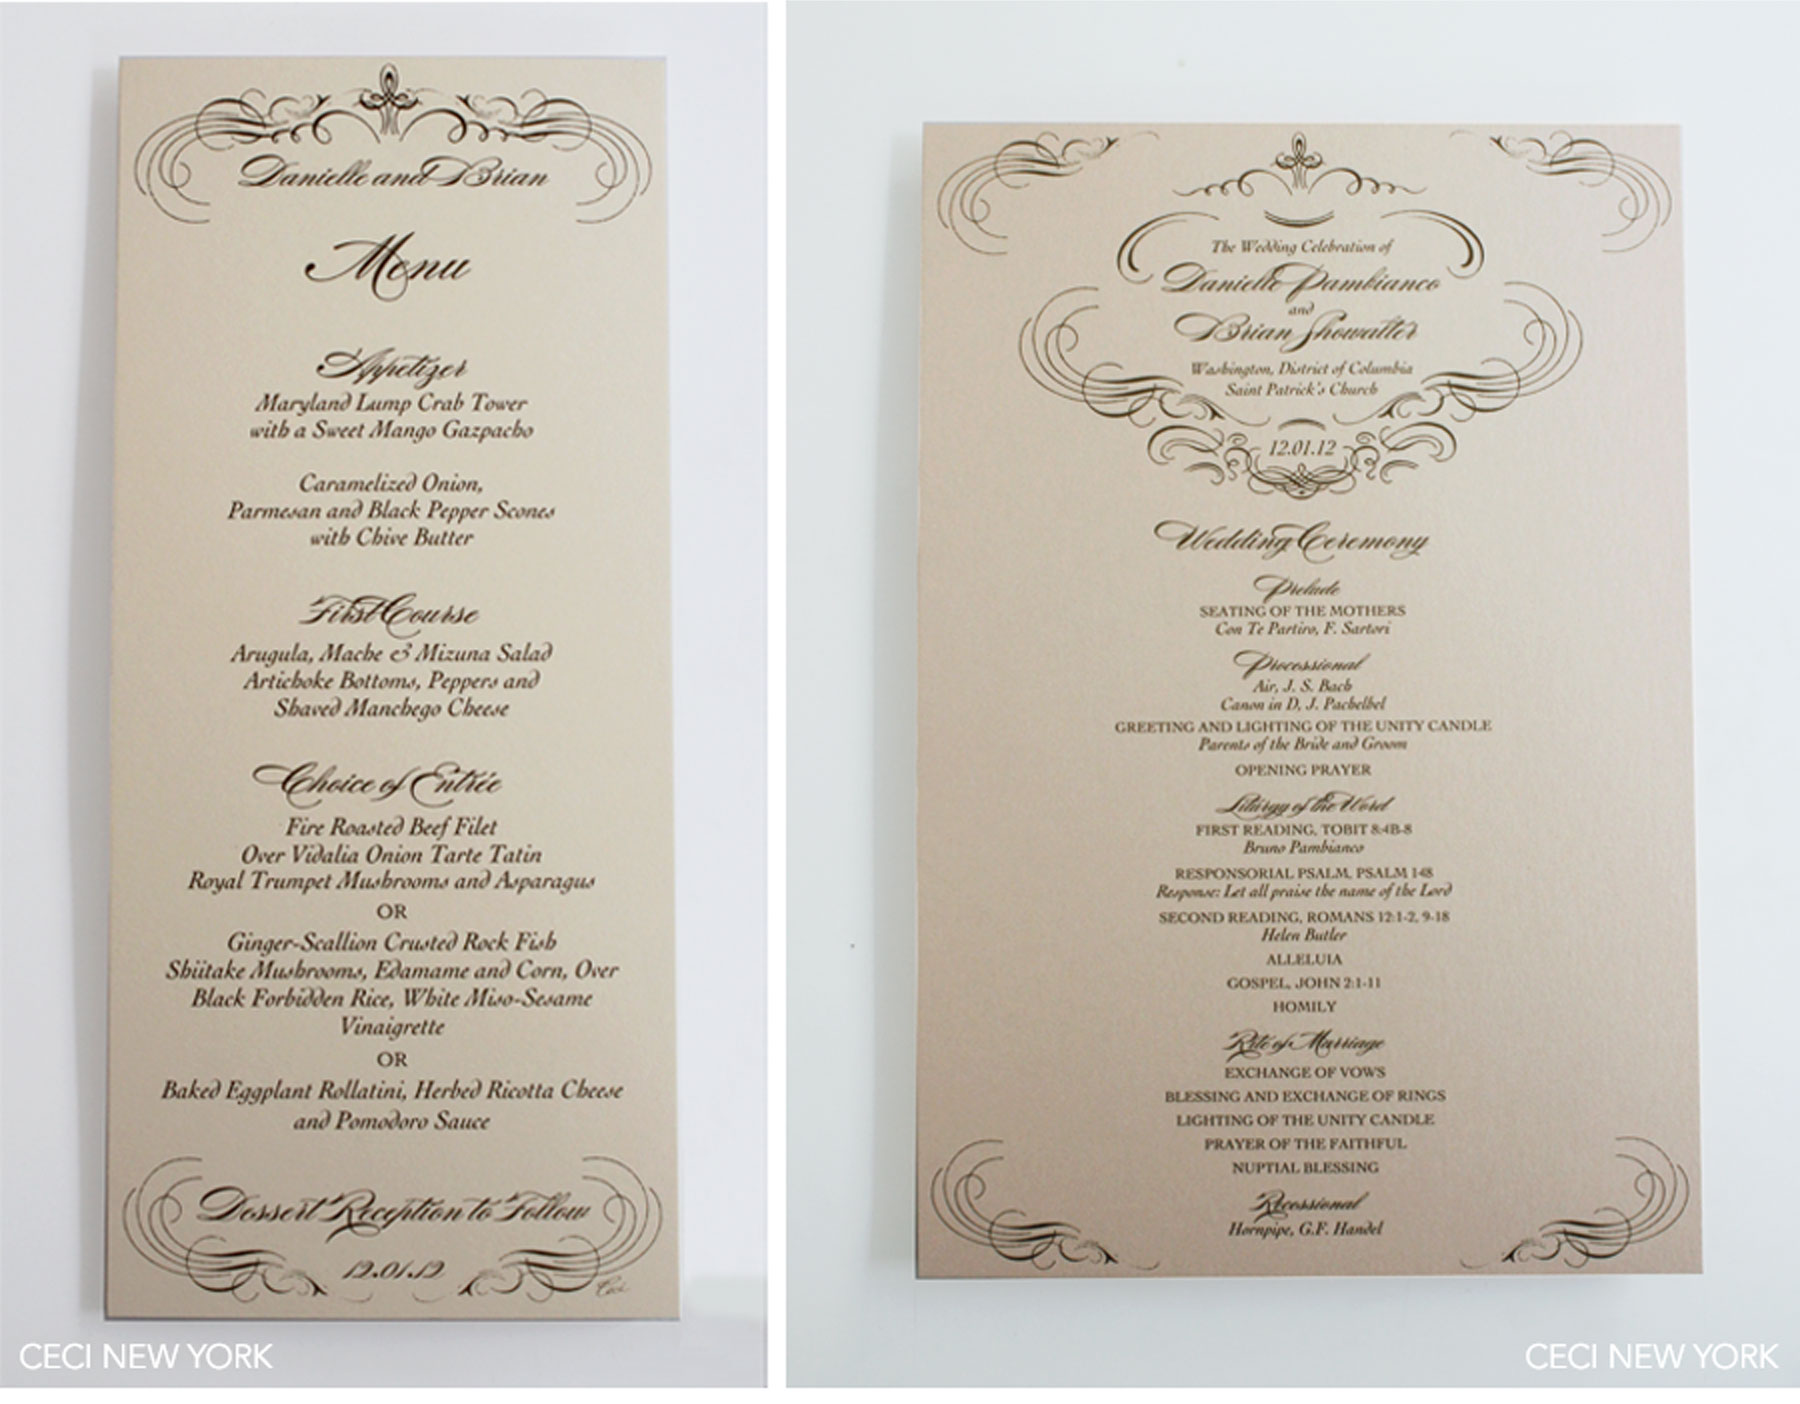 luxury wedding invitations by ceci new york our muse elegant masquerade wedding be - Masquerade Wedding Invitations